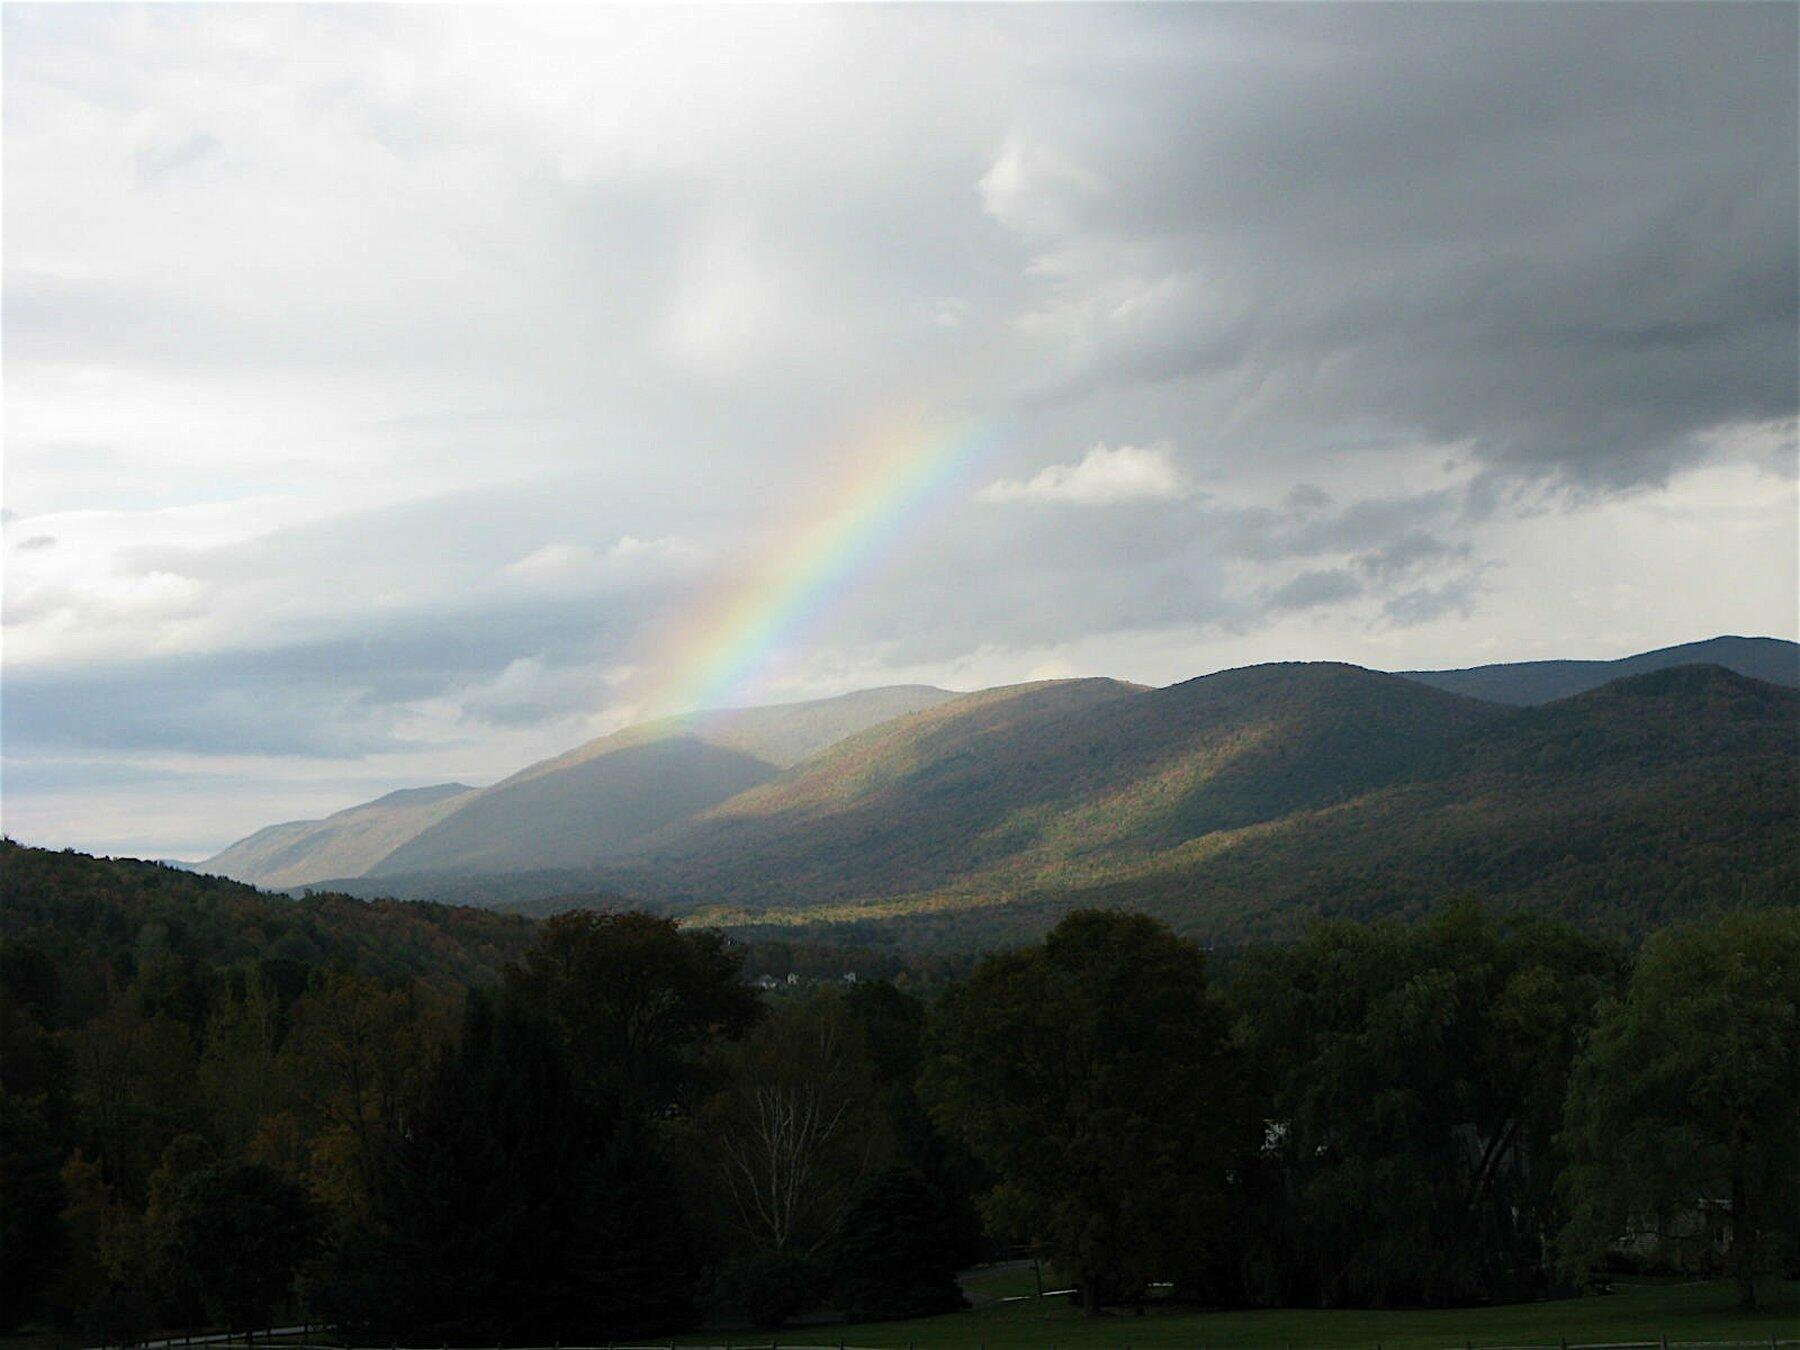 mountain view with rainbow